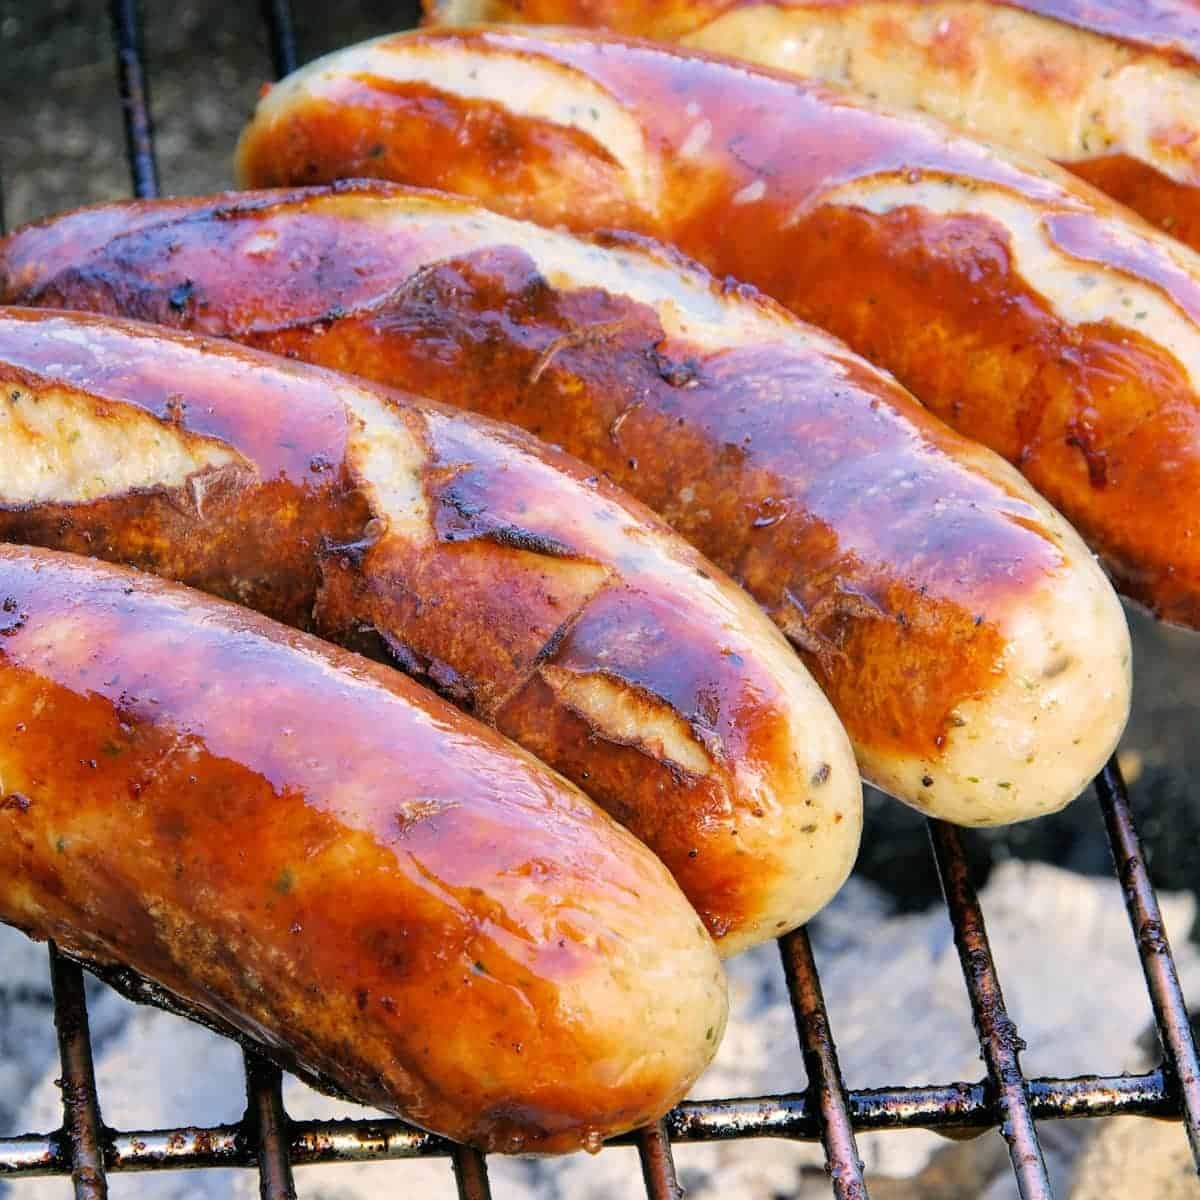 bratwurst recipe authentic german traditional best homemade charcuterie sausage making